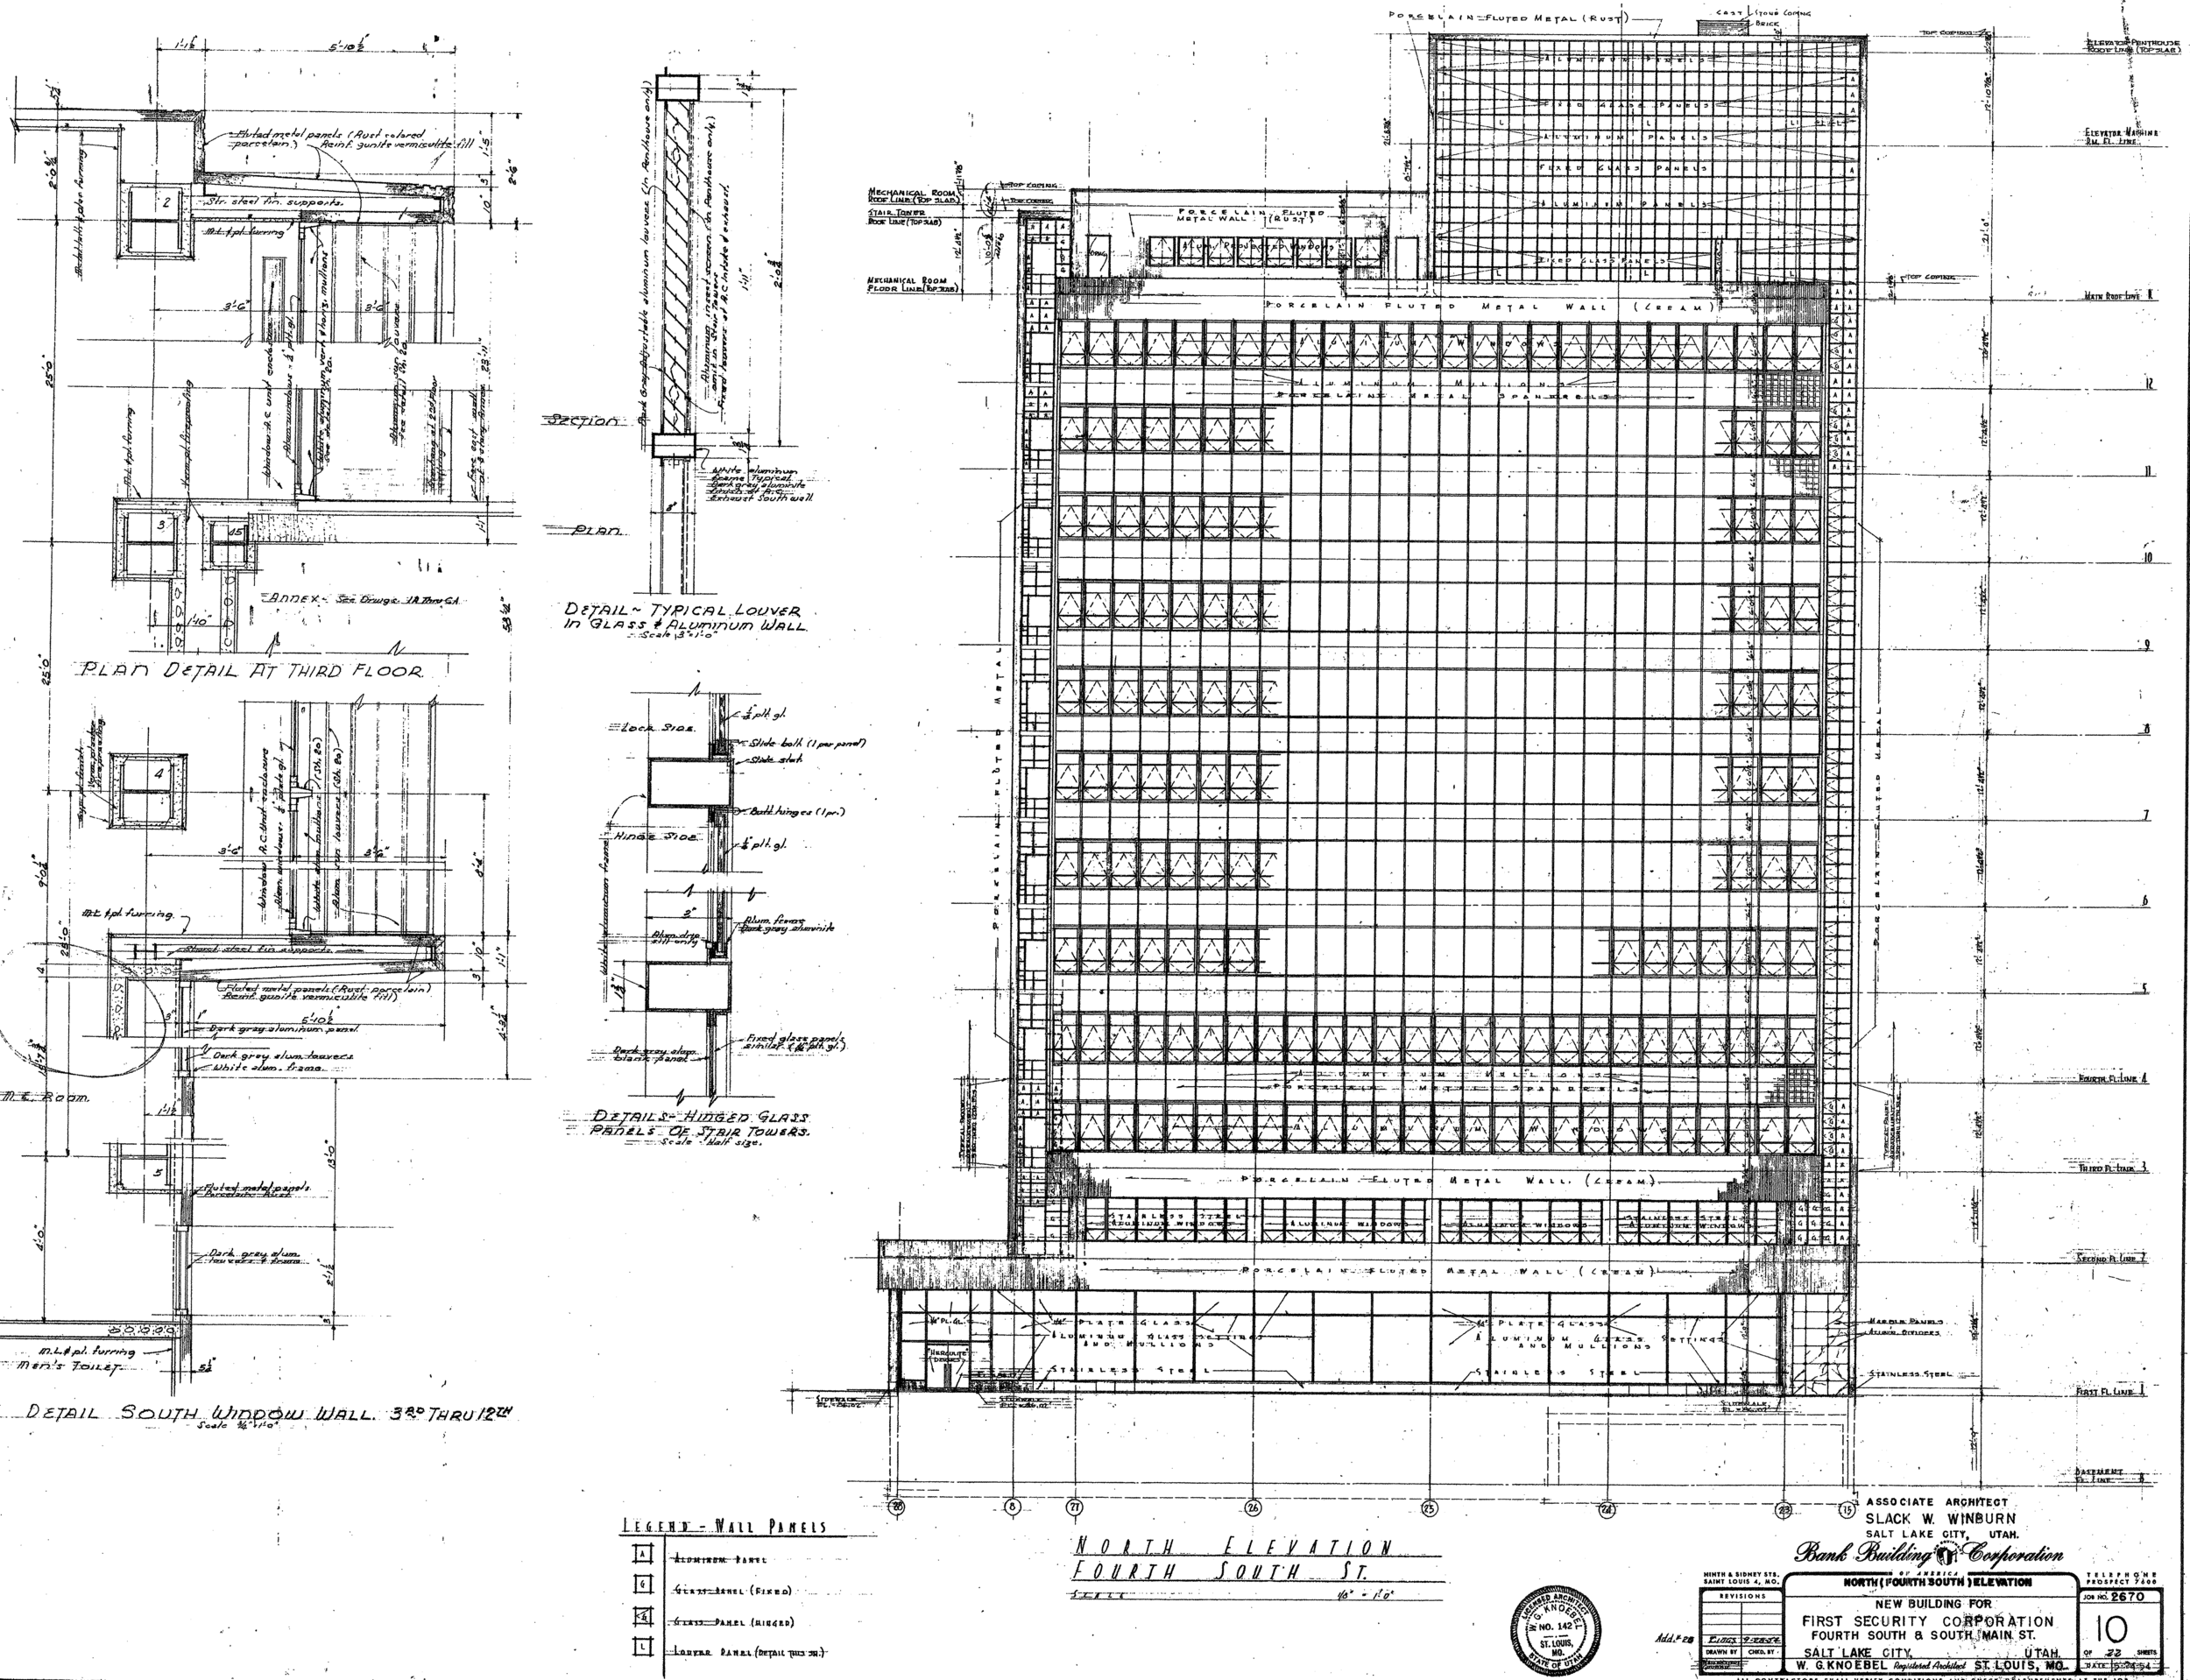 Original plan, First Security Bank Building, Salt Lake City, UT, 1955.